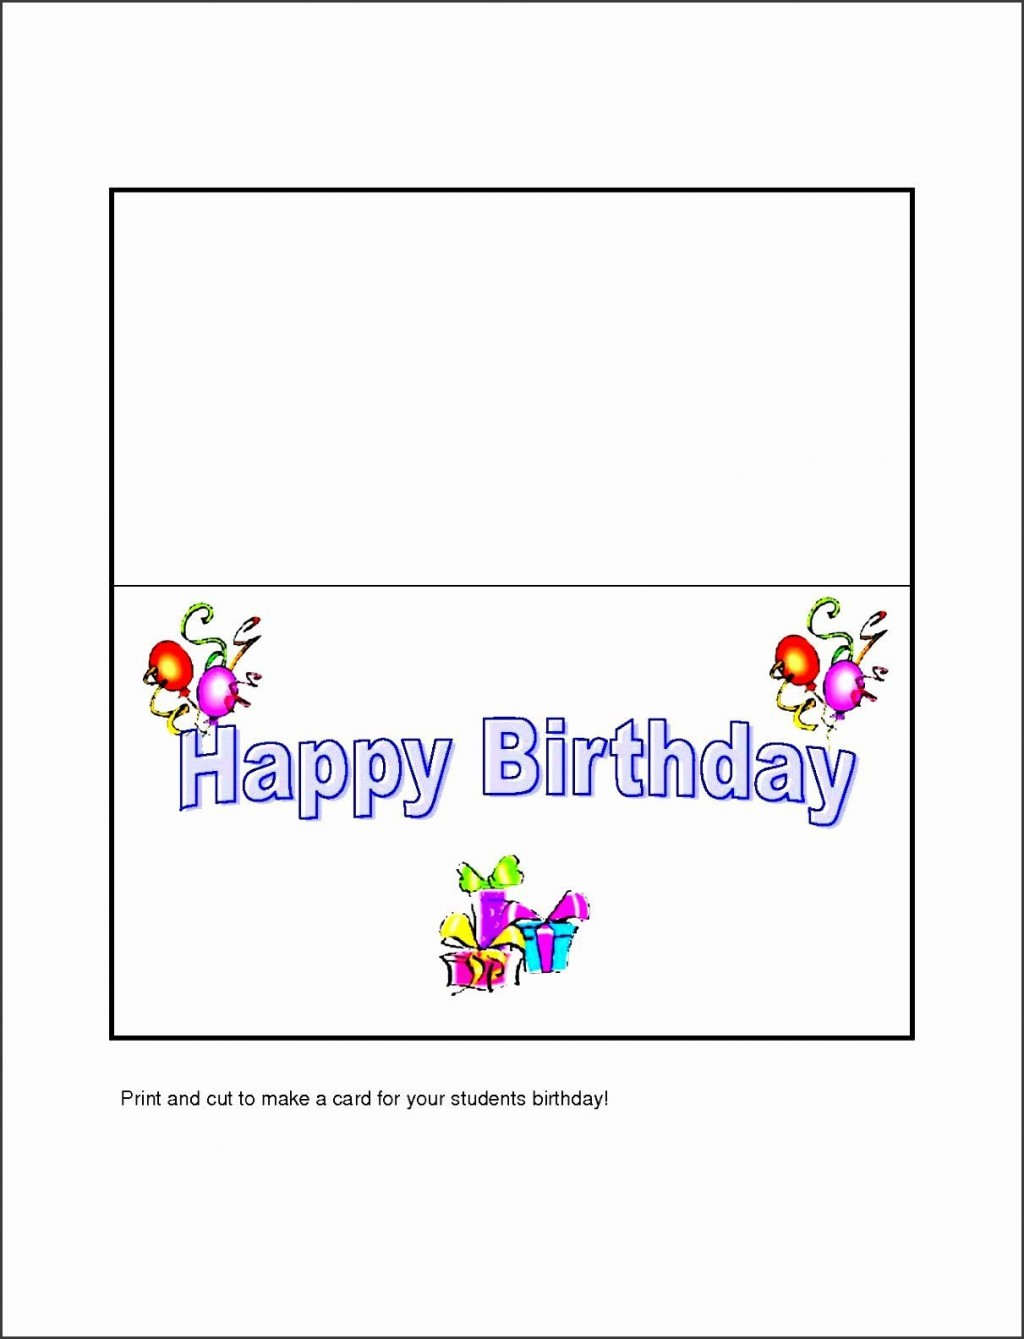 005 Fearsome Template For Birthday Card Photo  Happy InvitationLarge